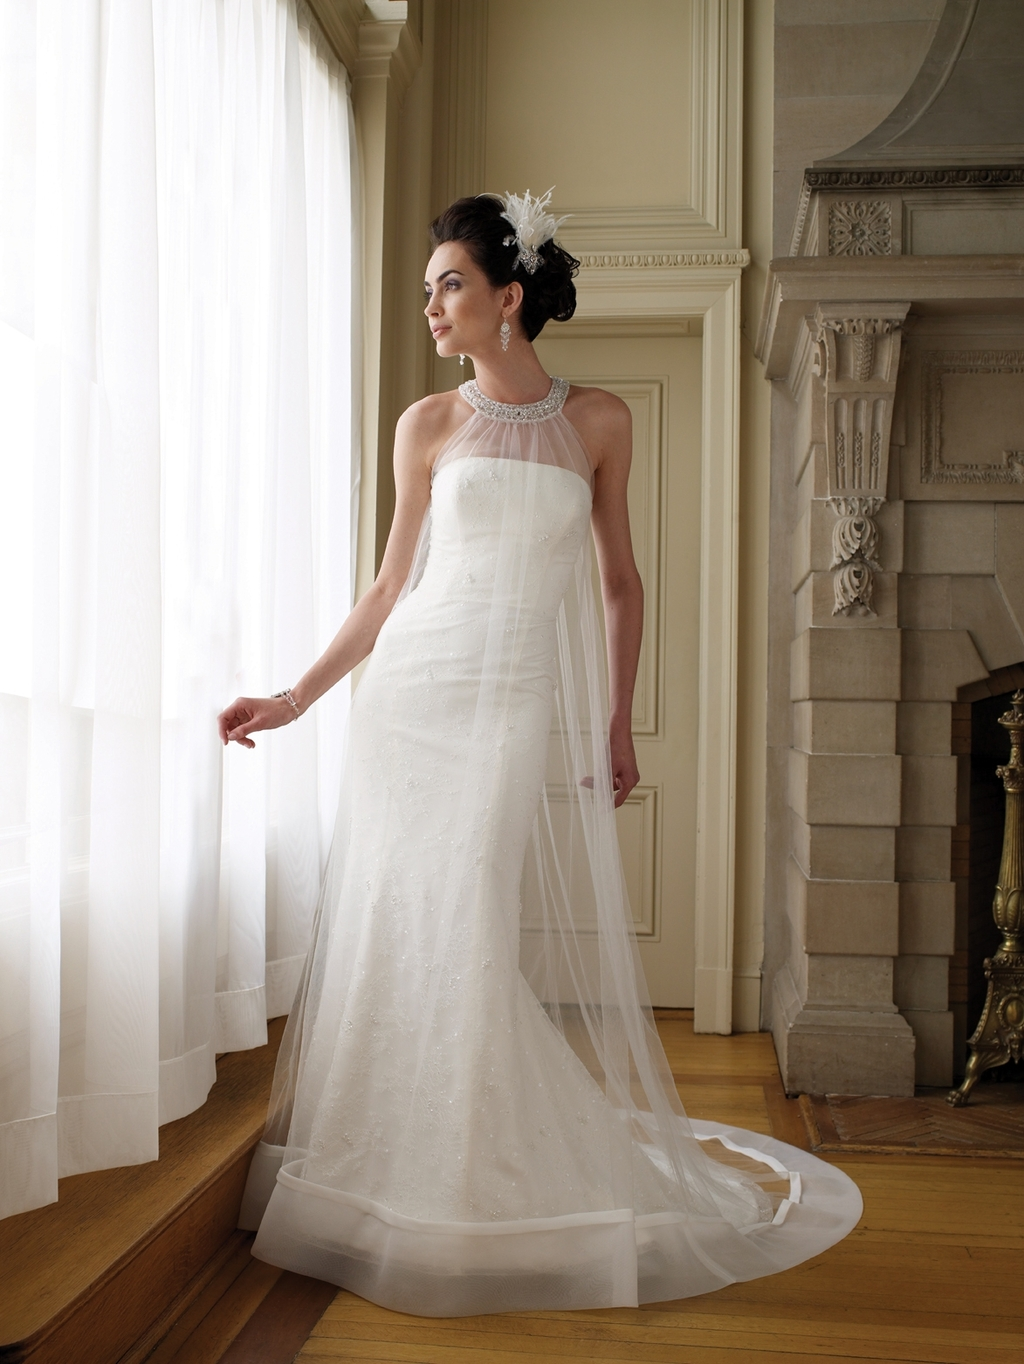 111206-008-mon-cheri-bridals-2011-wedding-dress-halter-illusion-fabric.full